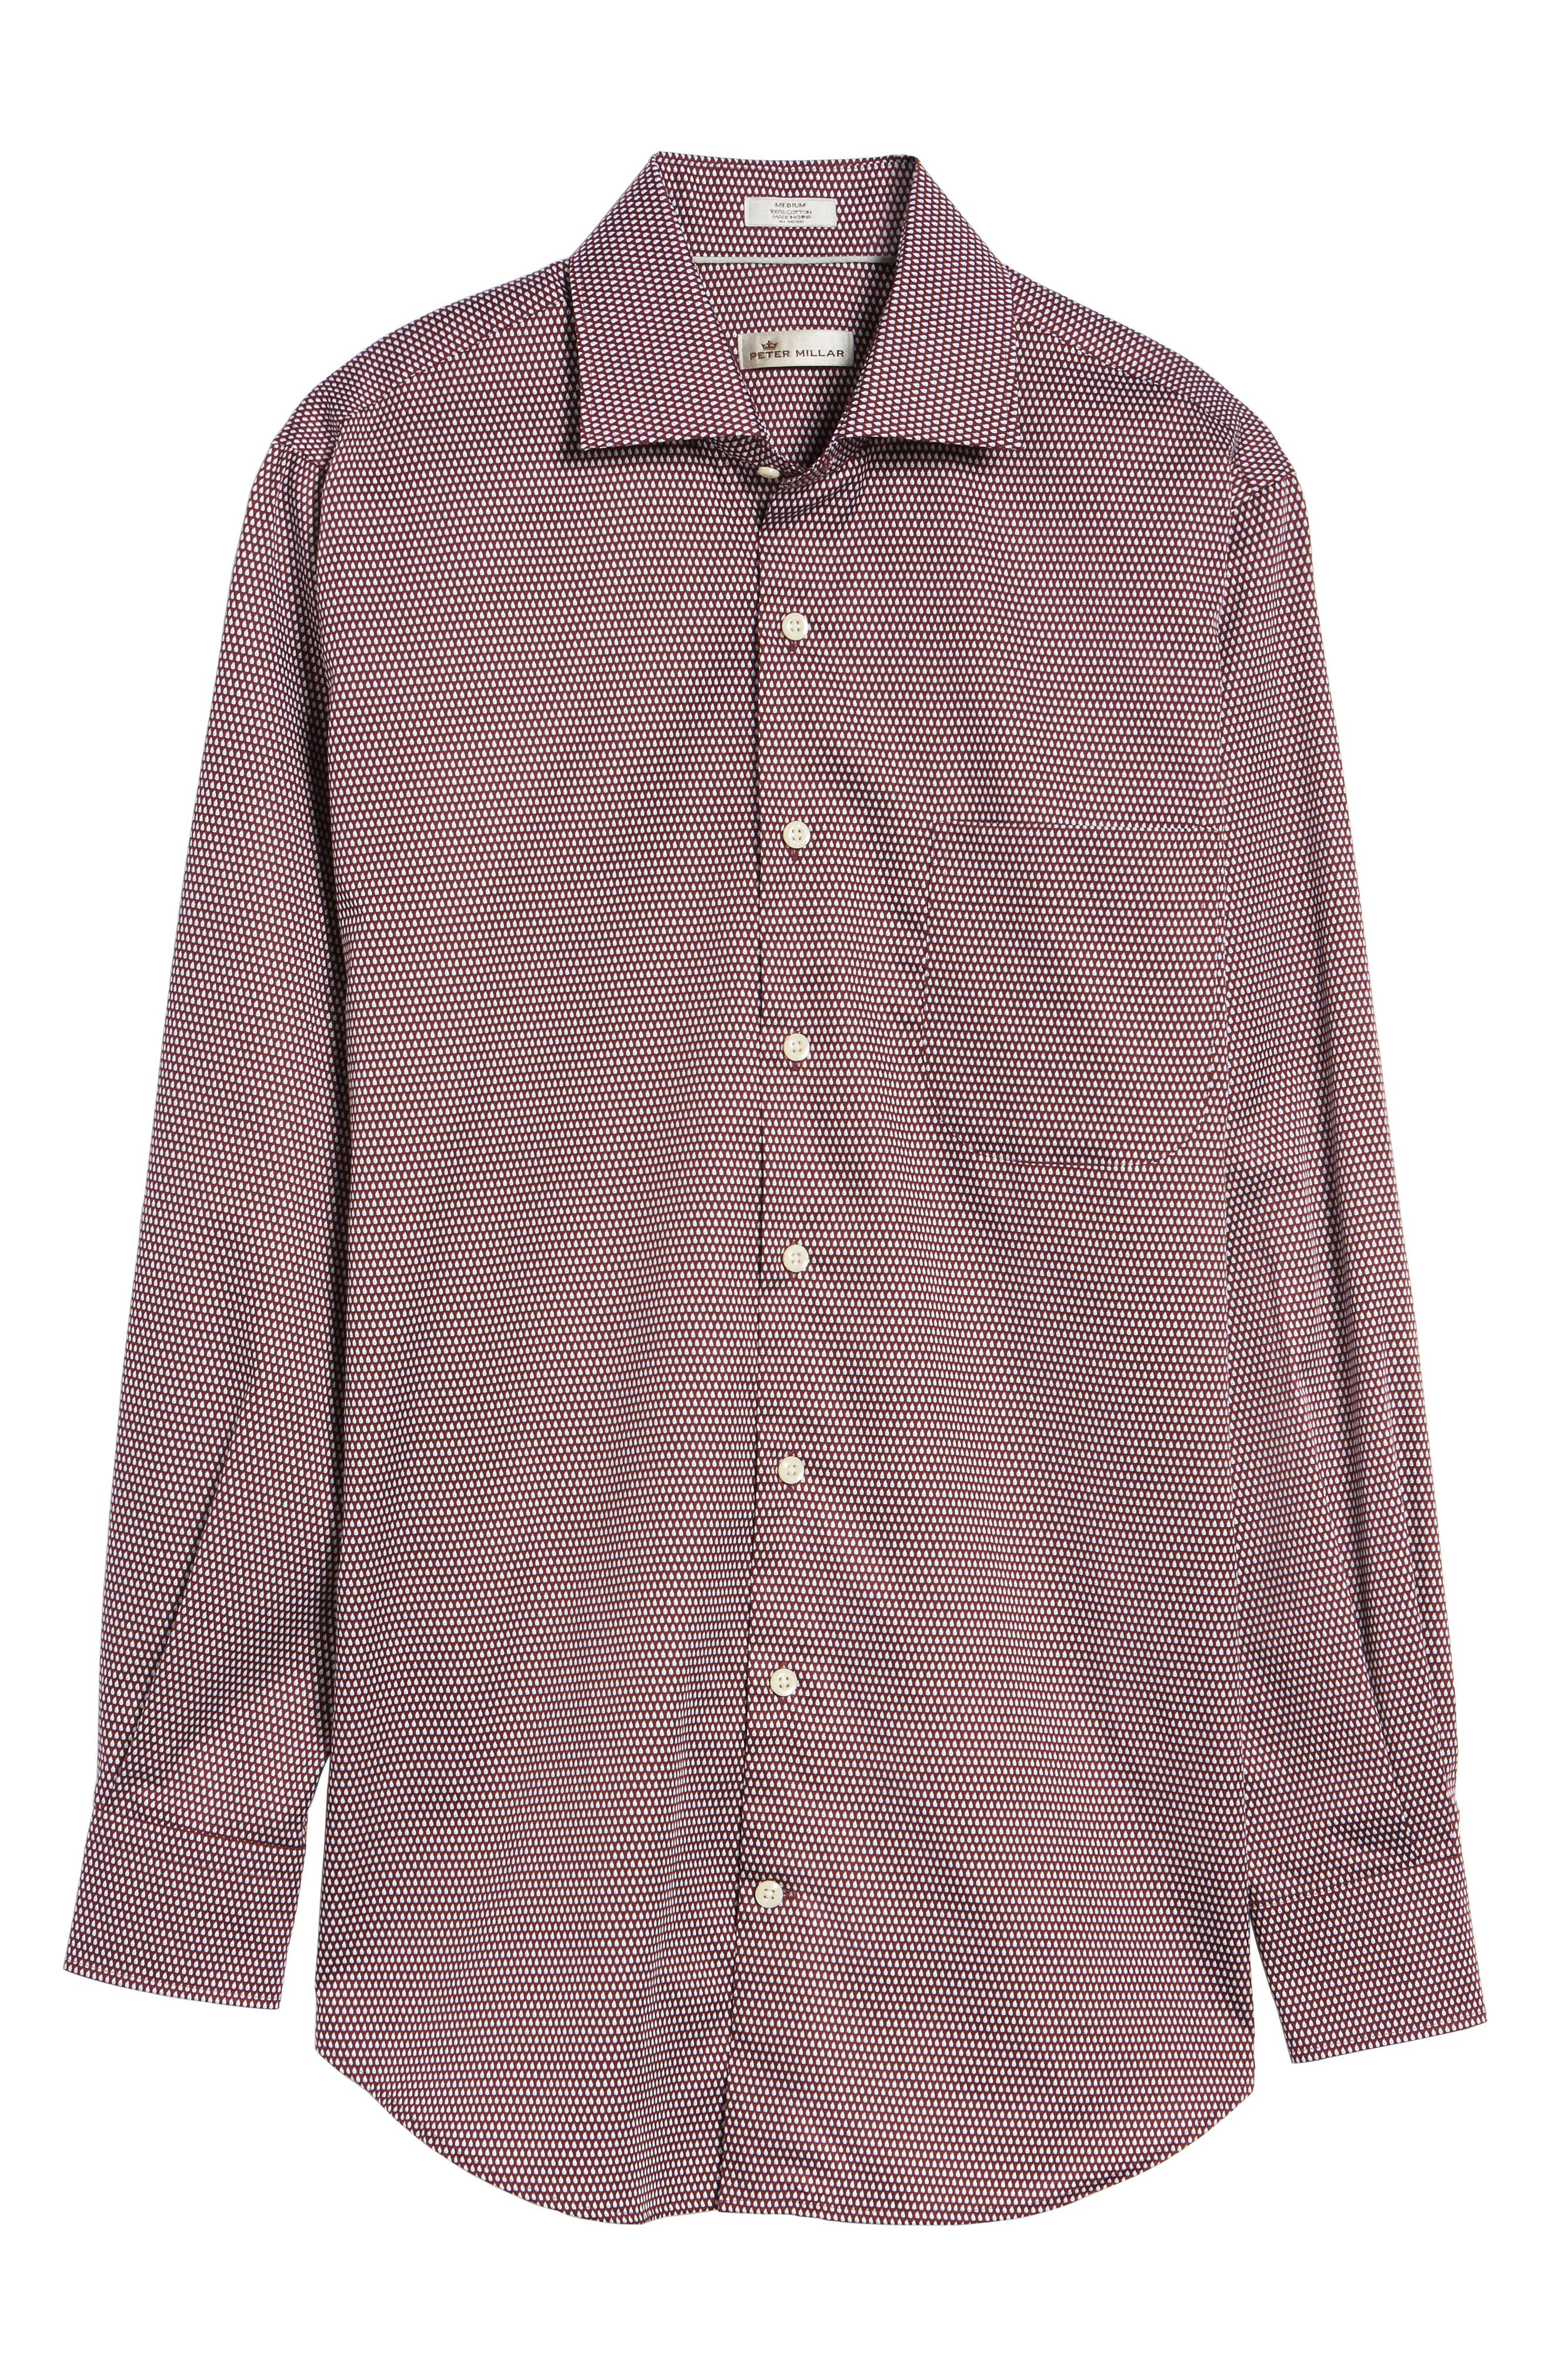 Single Flame Regular Fit Sport Shirt,                             Alternate thumbnail 6, color,                             French Wine